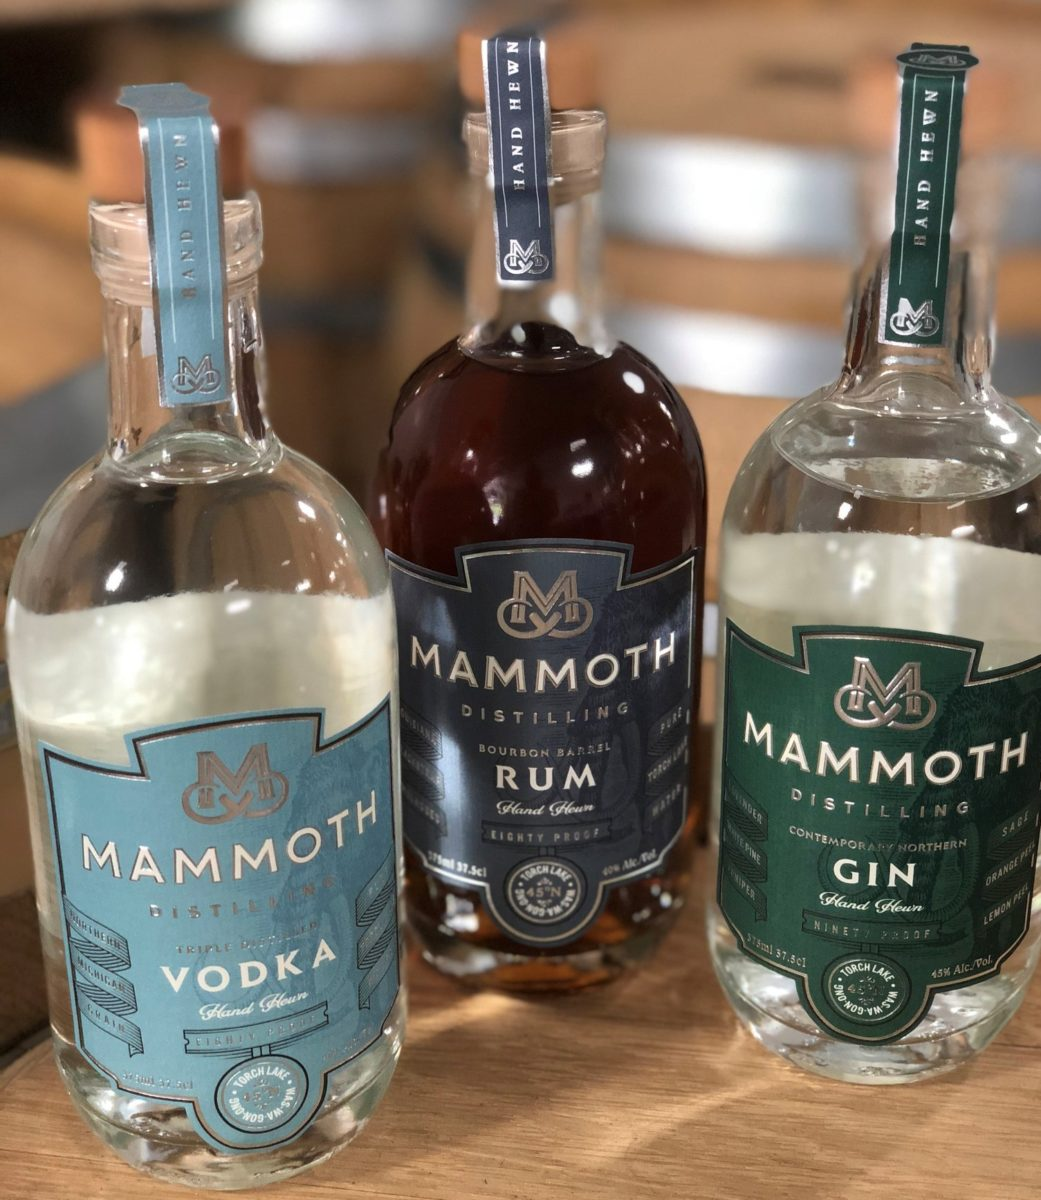 Updated Packaging Brings Refreshing New Look to Mammoth Distilling